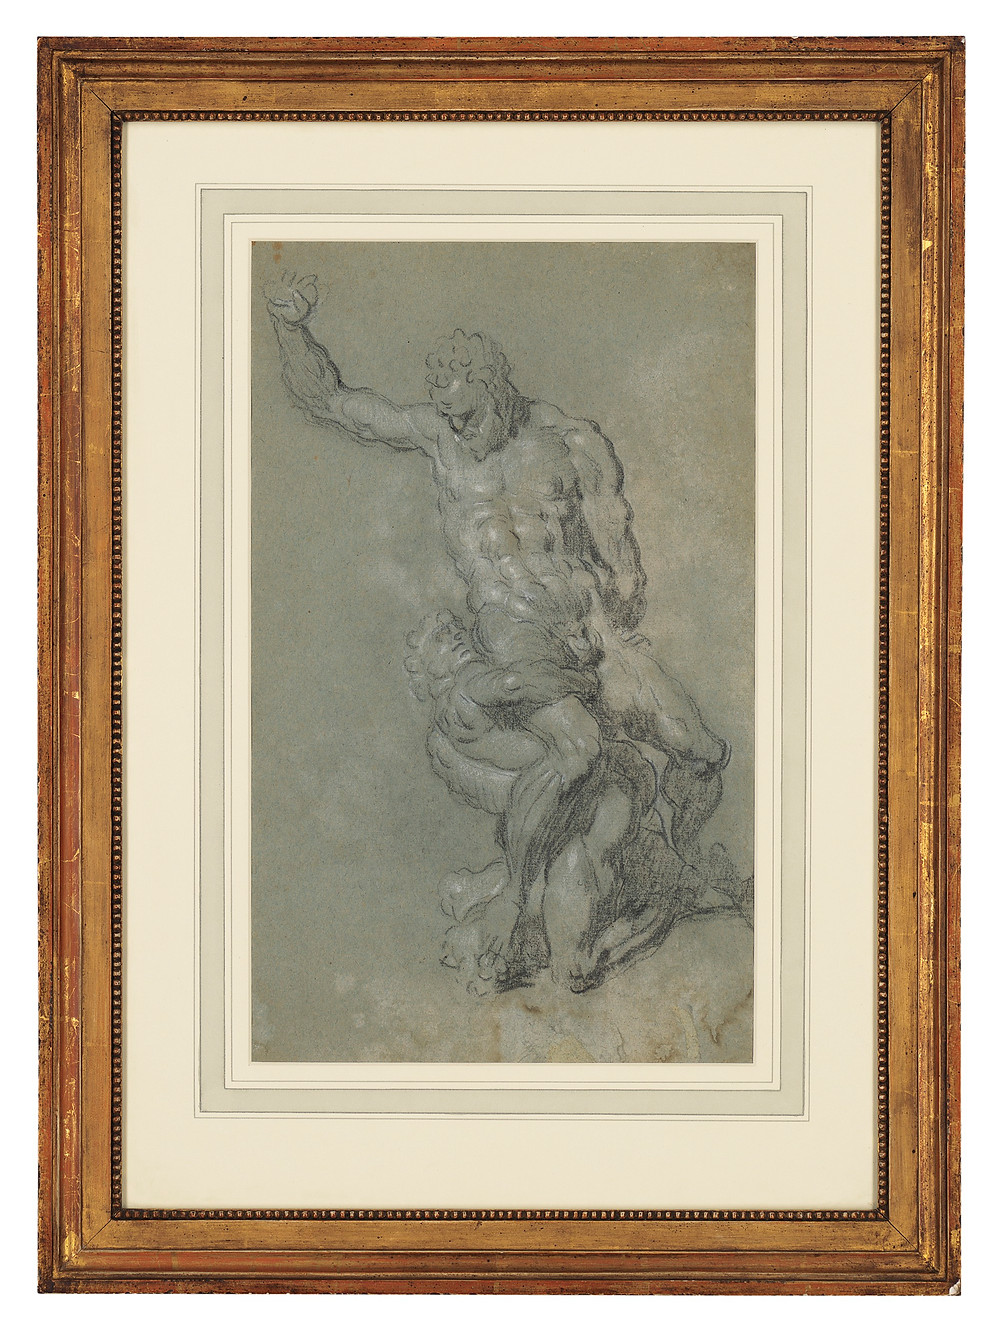 Fine Art at Christies.com. Jacopo Robusti, called Jacopo Tintoretto (Venice 1519-1594) or Studio  Samson slaying the Philistines, after Michelangelo (recto and verso)